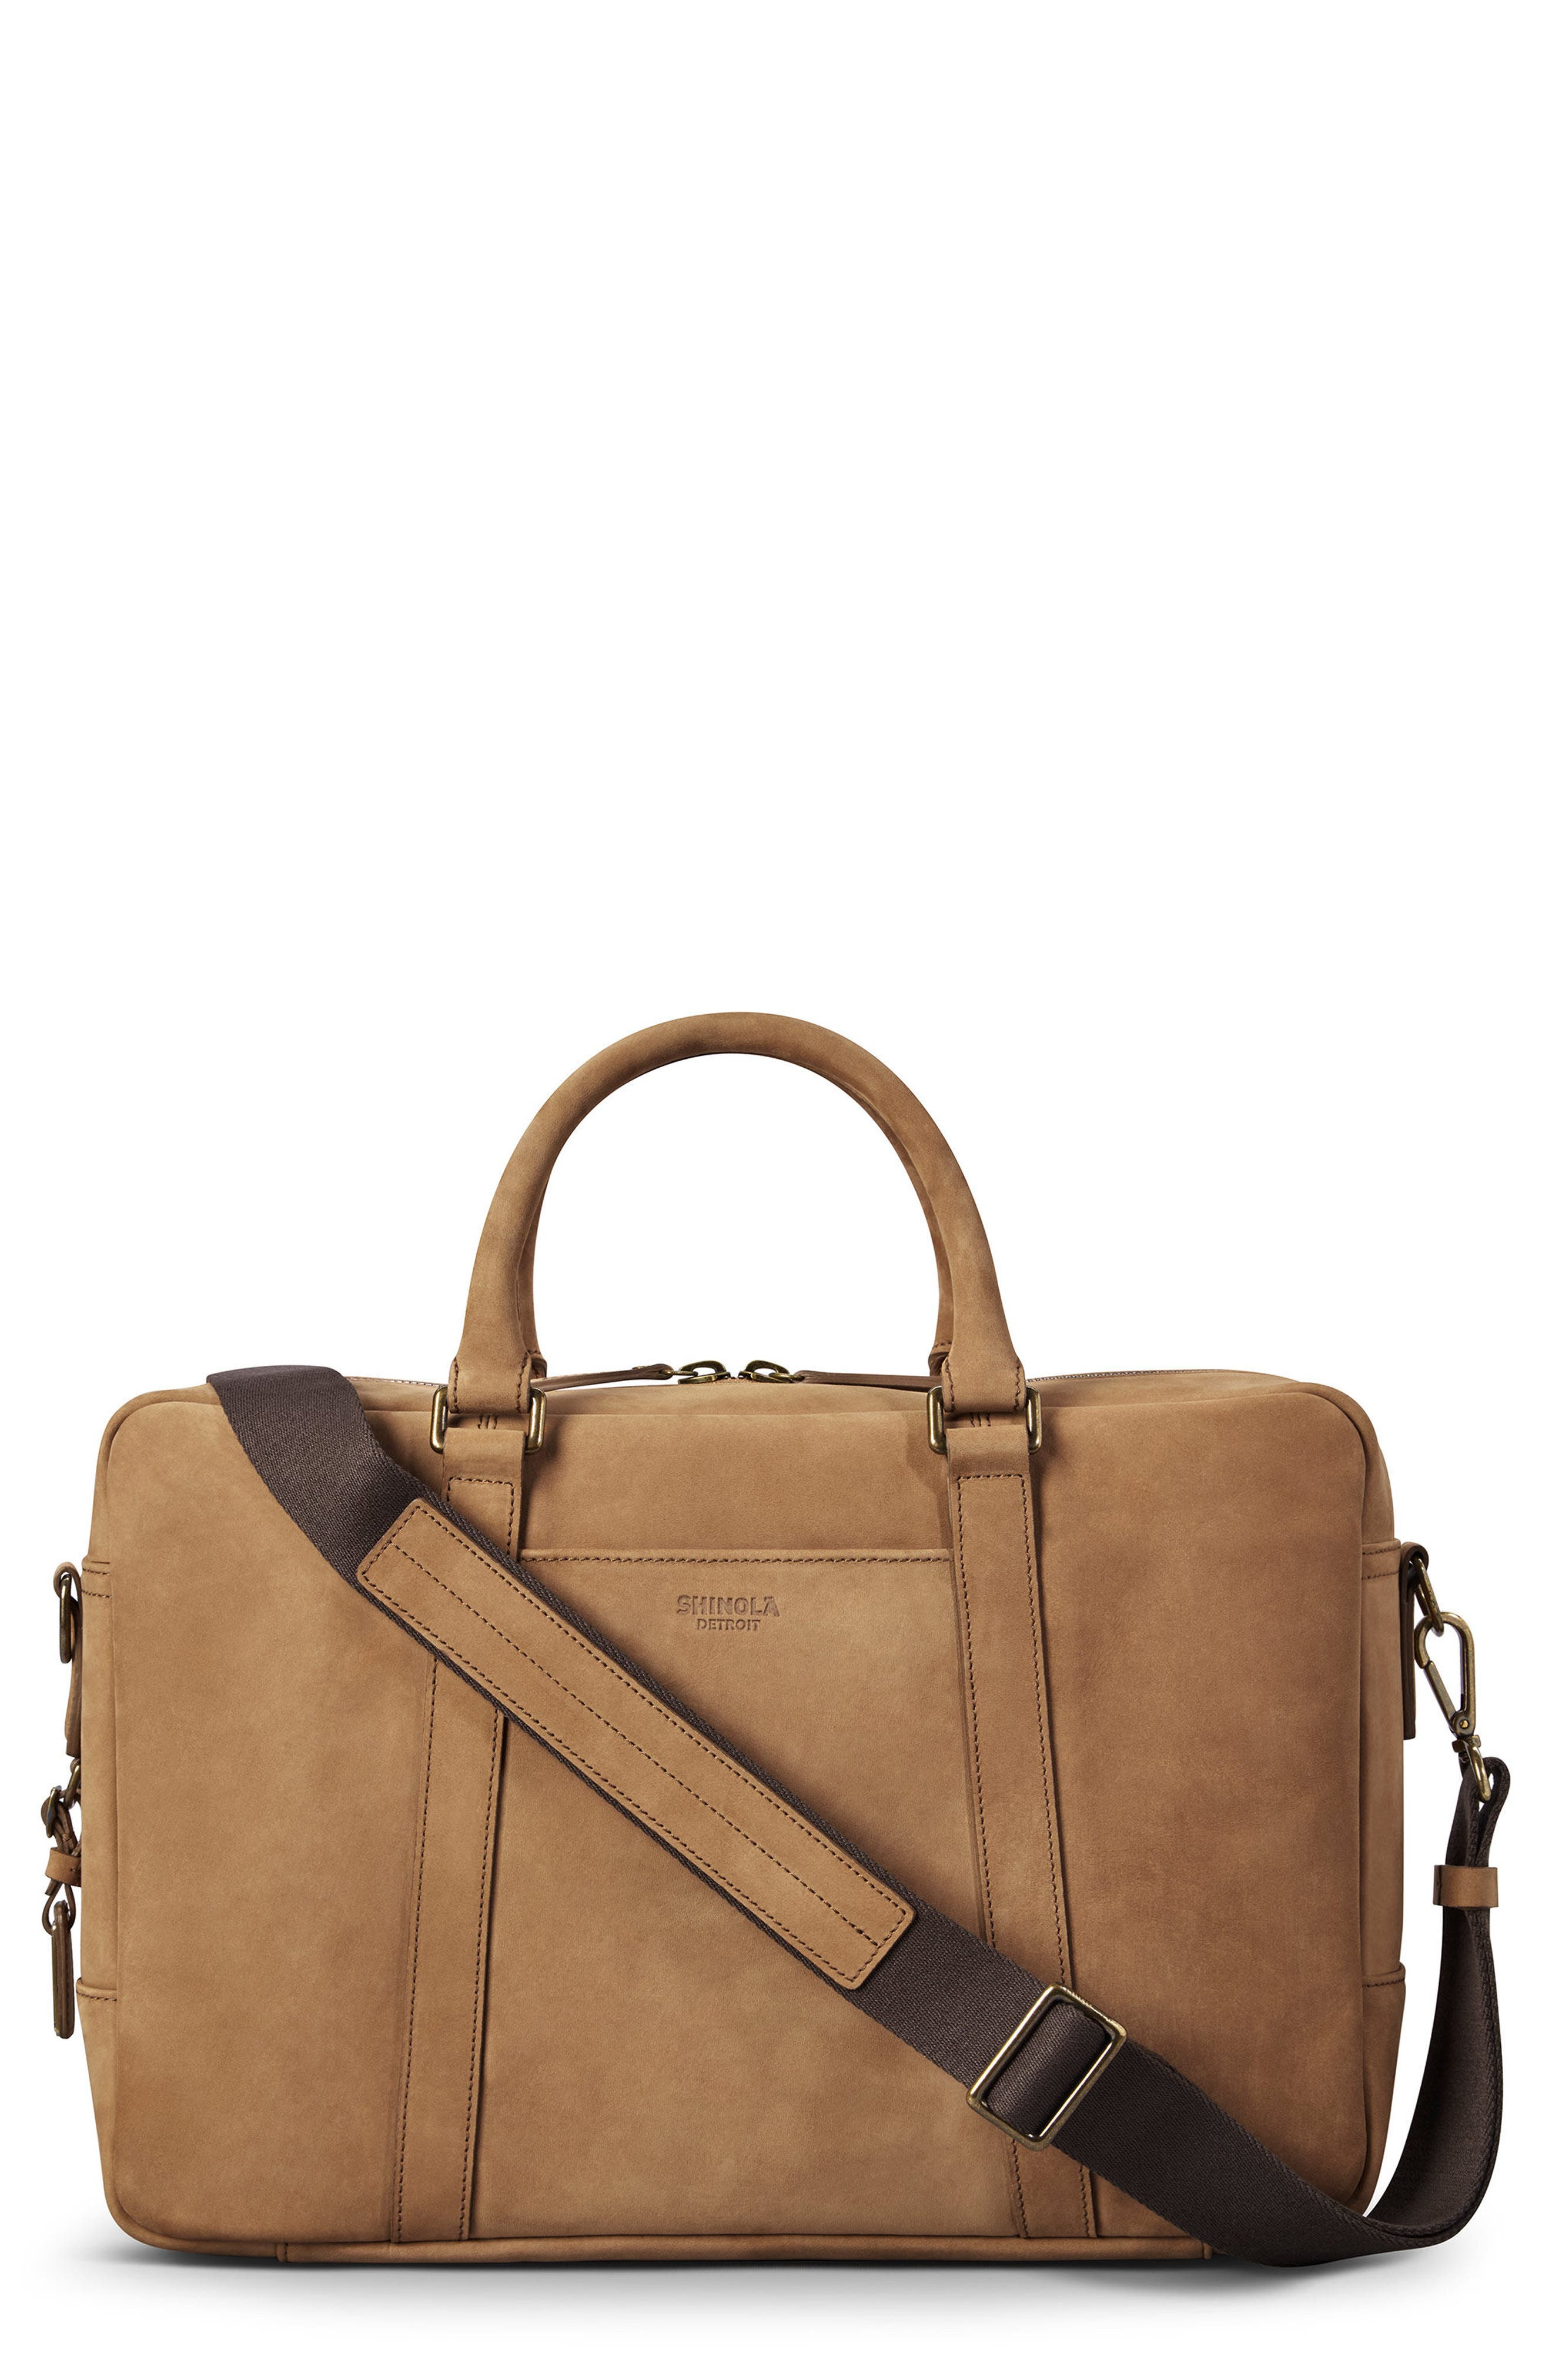 SHINOLA Men'S Outrigger Slim Leather Laptop Briefcase in Light Brown